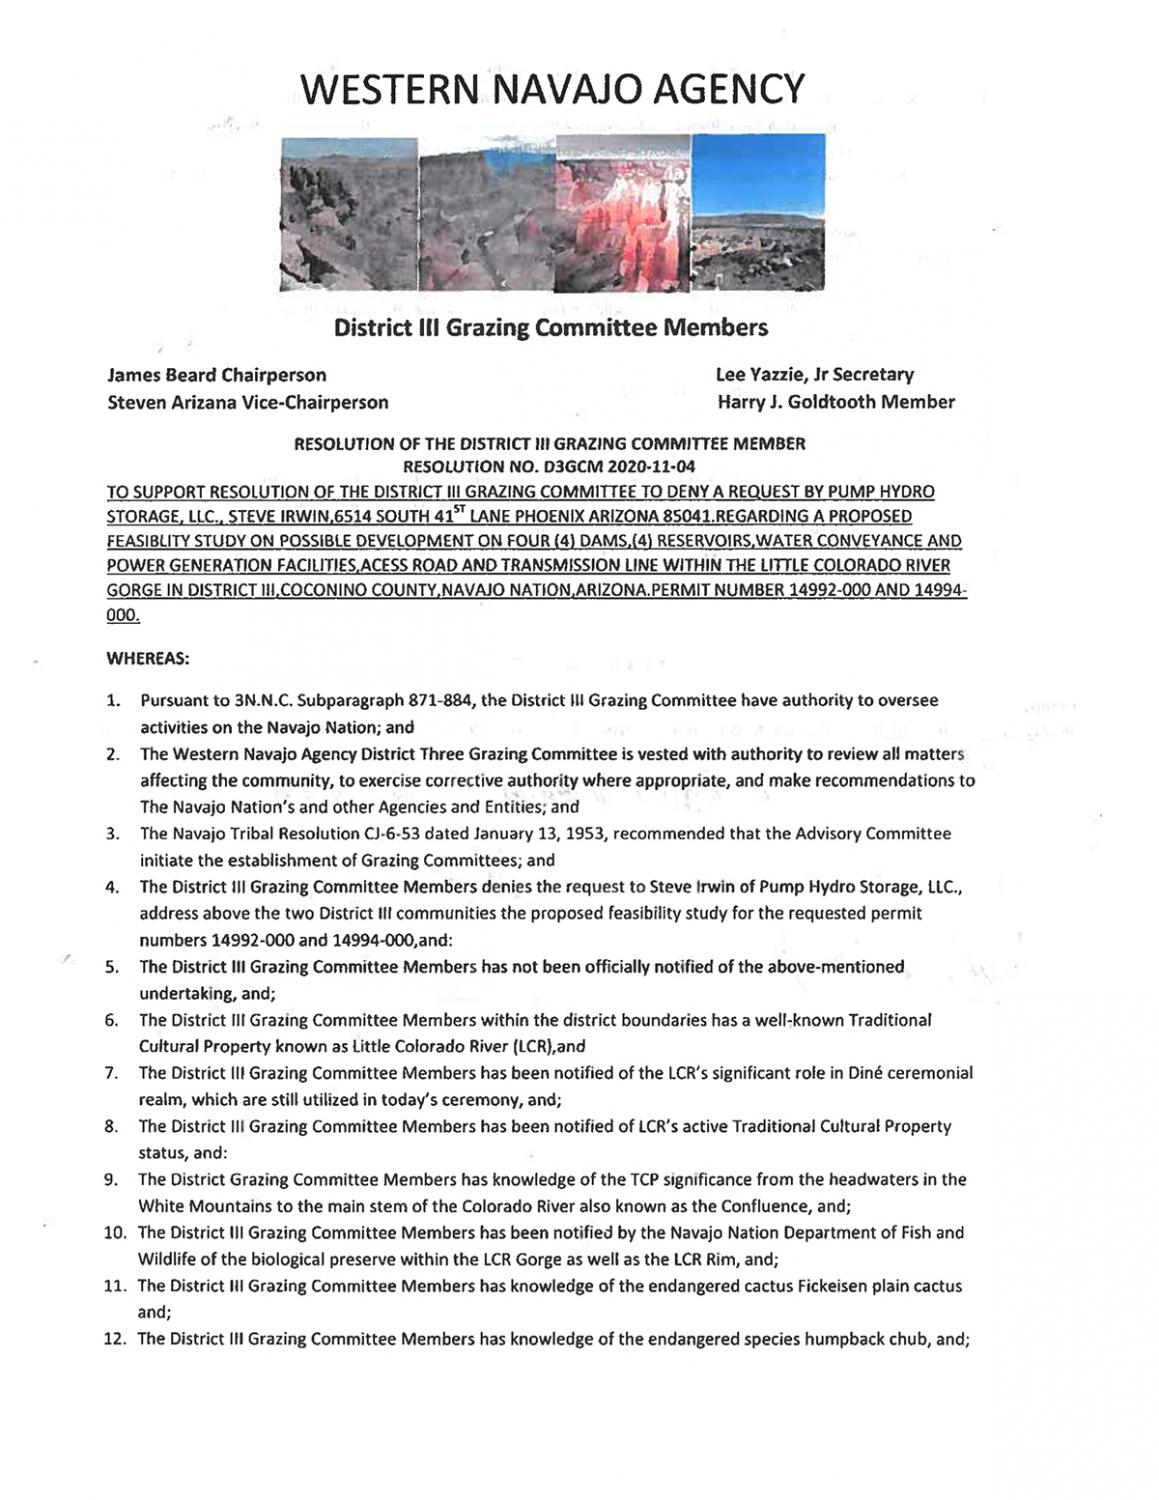 District III resolution against pumped hydro storage projects